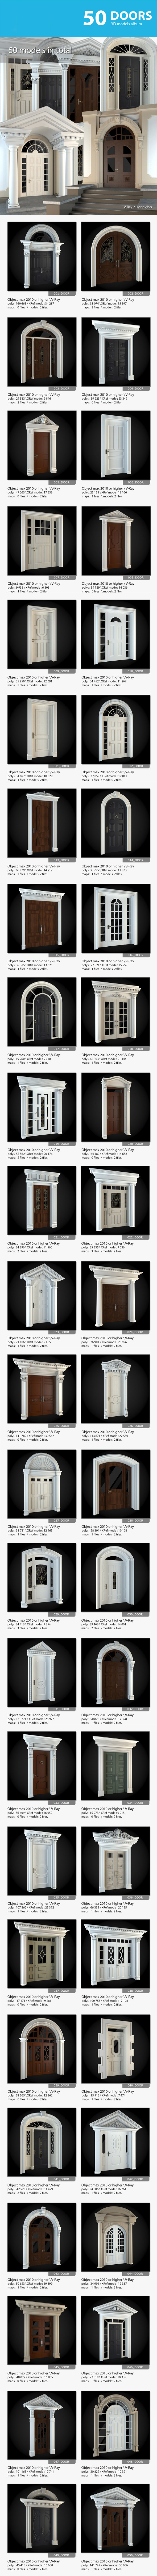 Doors Collection - 3DOcean Item for Sale